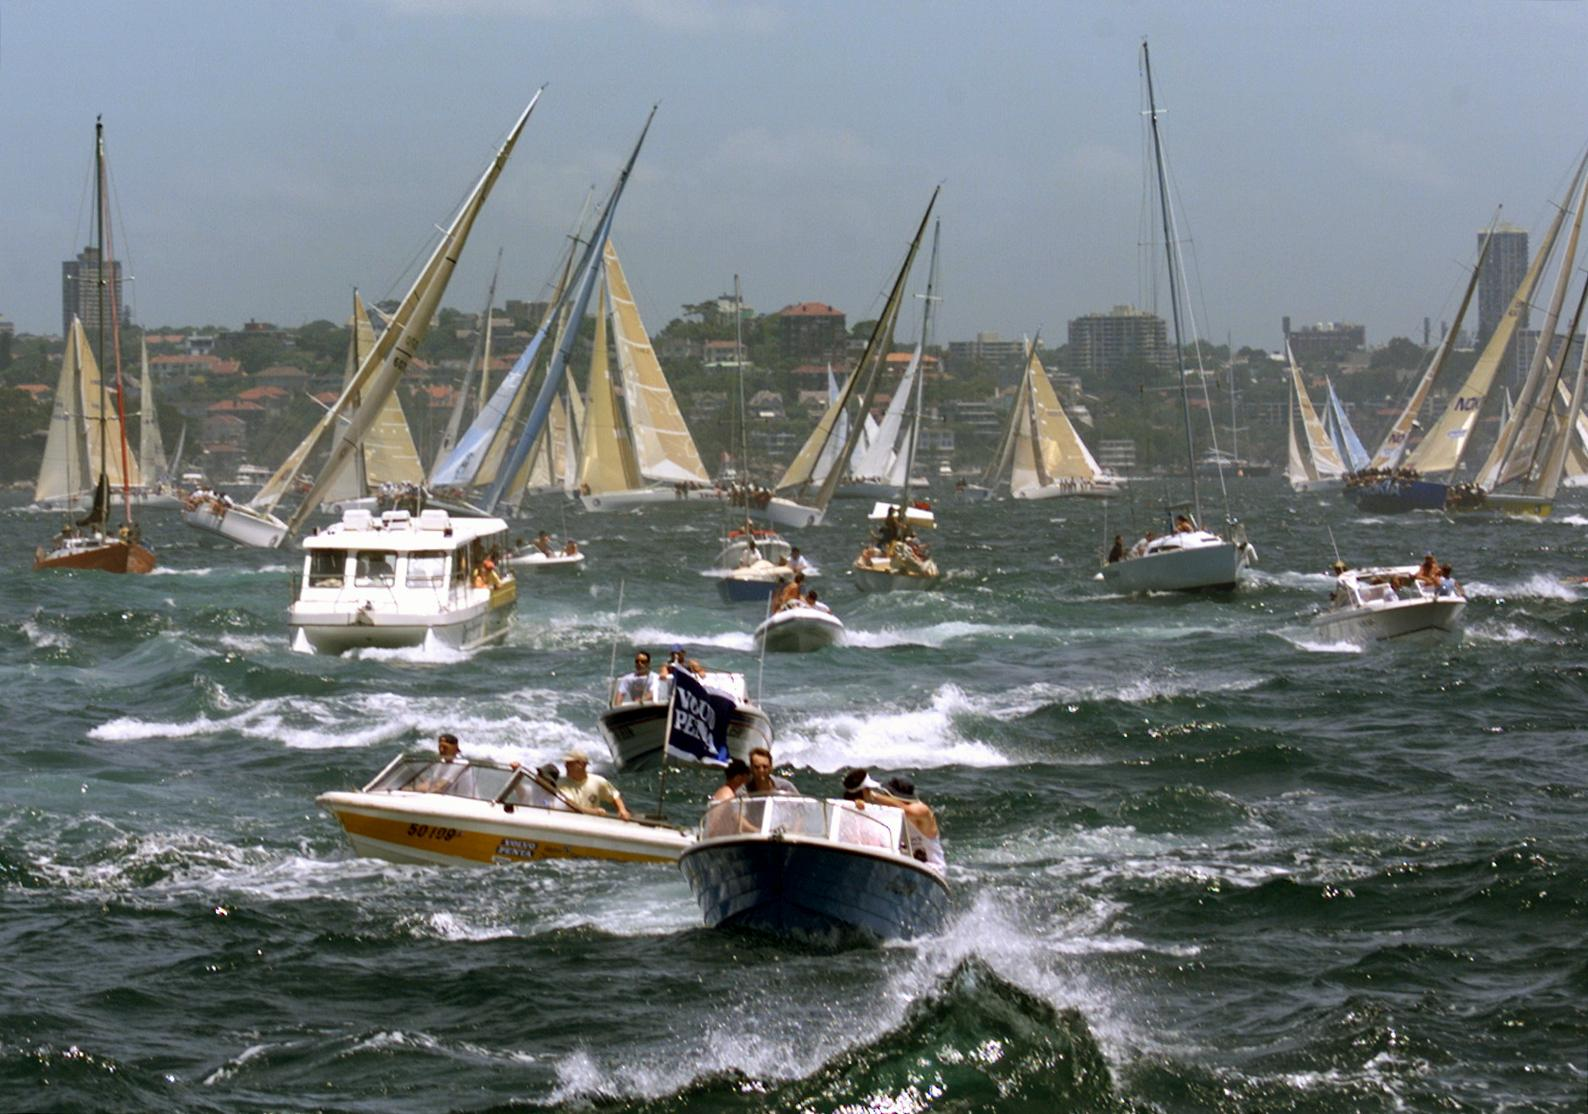 An armada of spectator craft churn up Sydney Harbour during the start of the 54th Sydney-to-Hobart ocean race, Dec. 26, 1998.